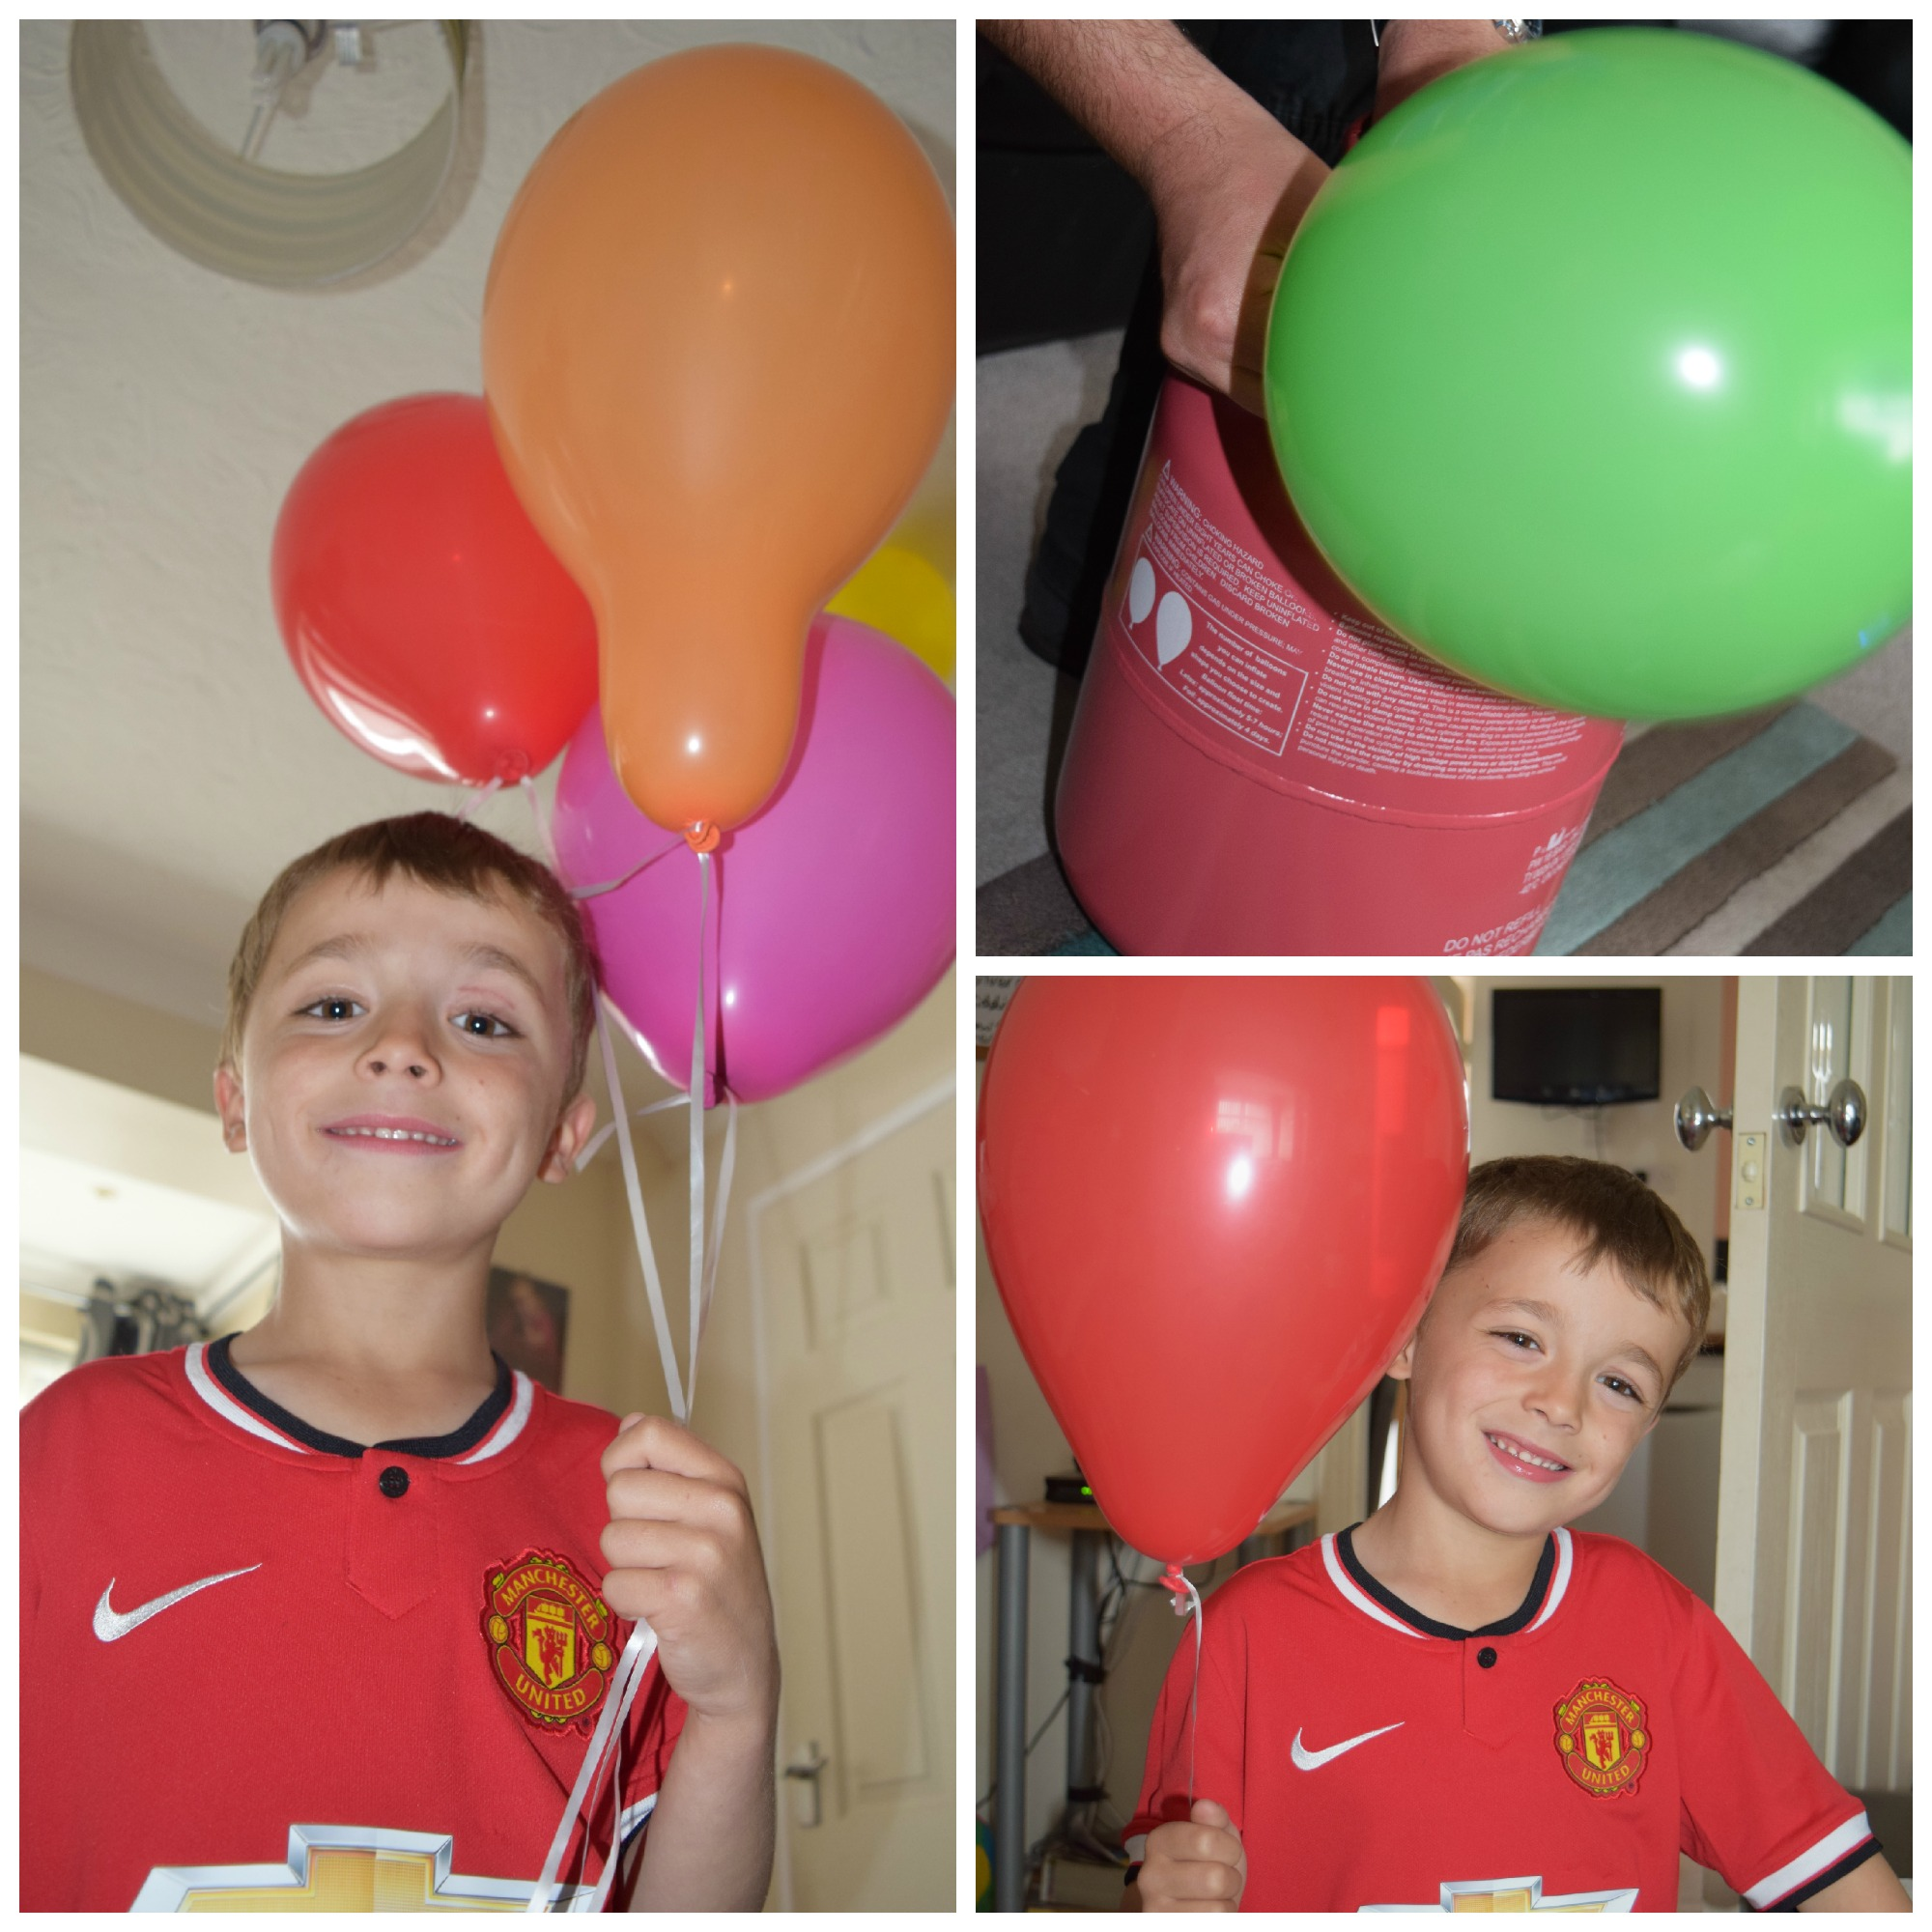 Jacob's 7th birthday with Balloon Time - Family Fever